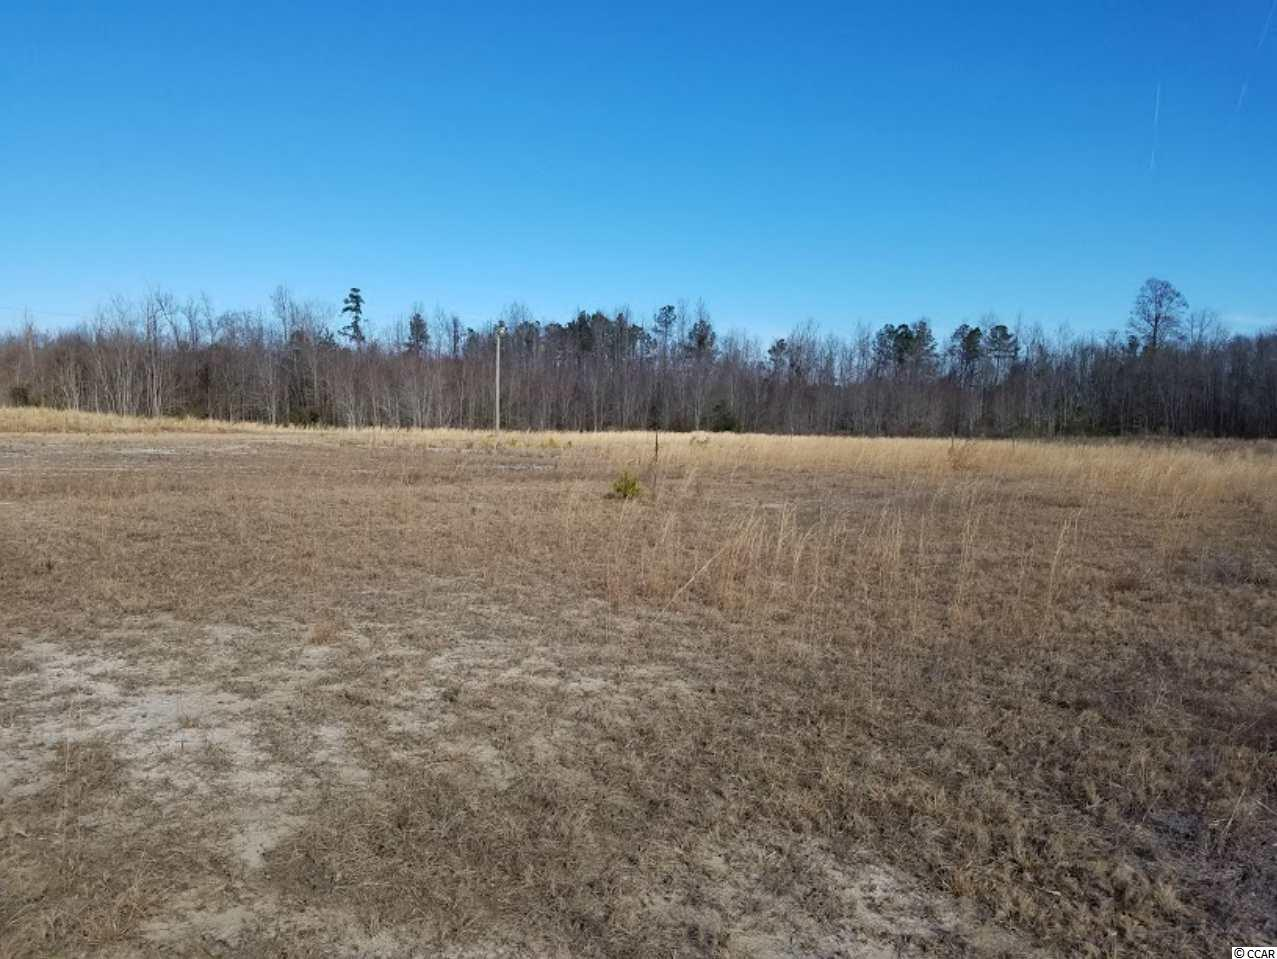 Acreage for Sale at TBD Hwy 9 Bypass TBD Hwy 9 Bypass Loris, South Carolina 29569 United States